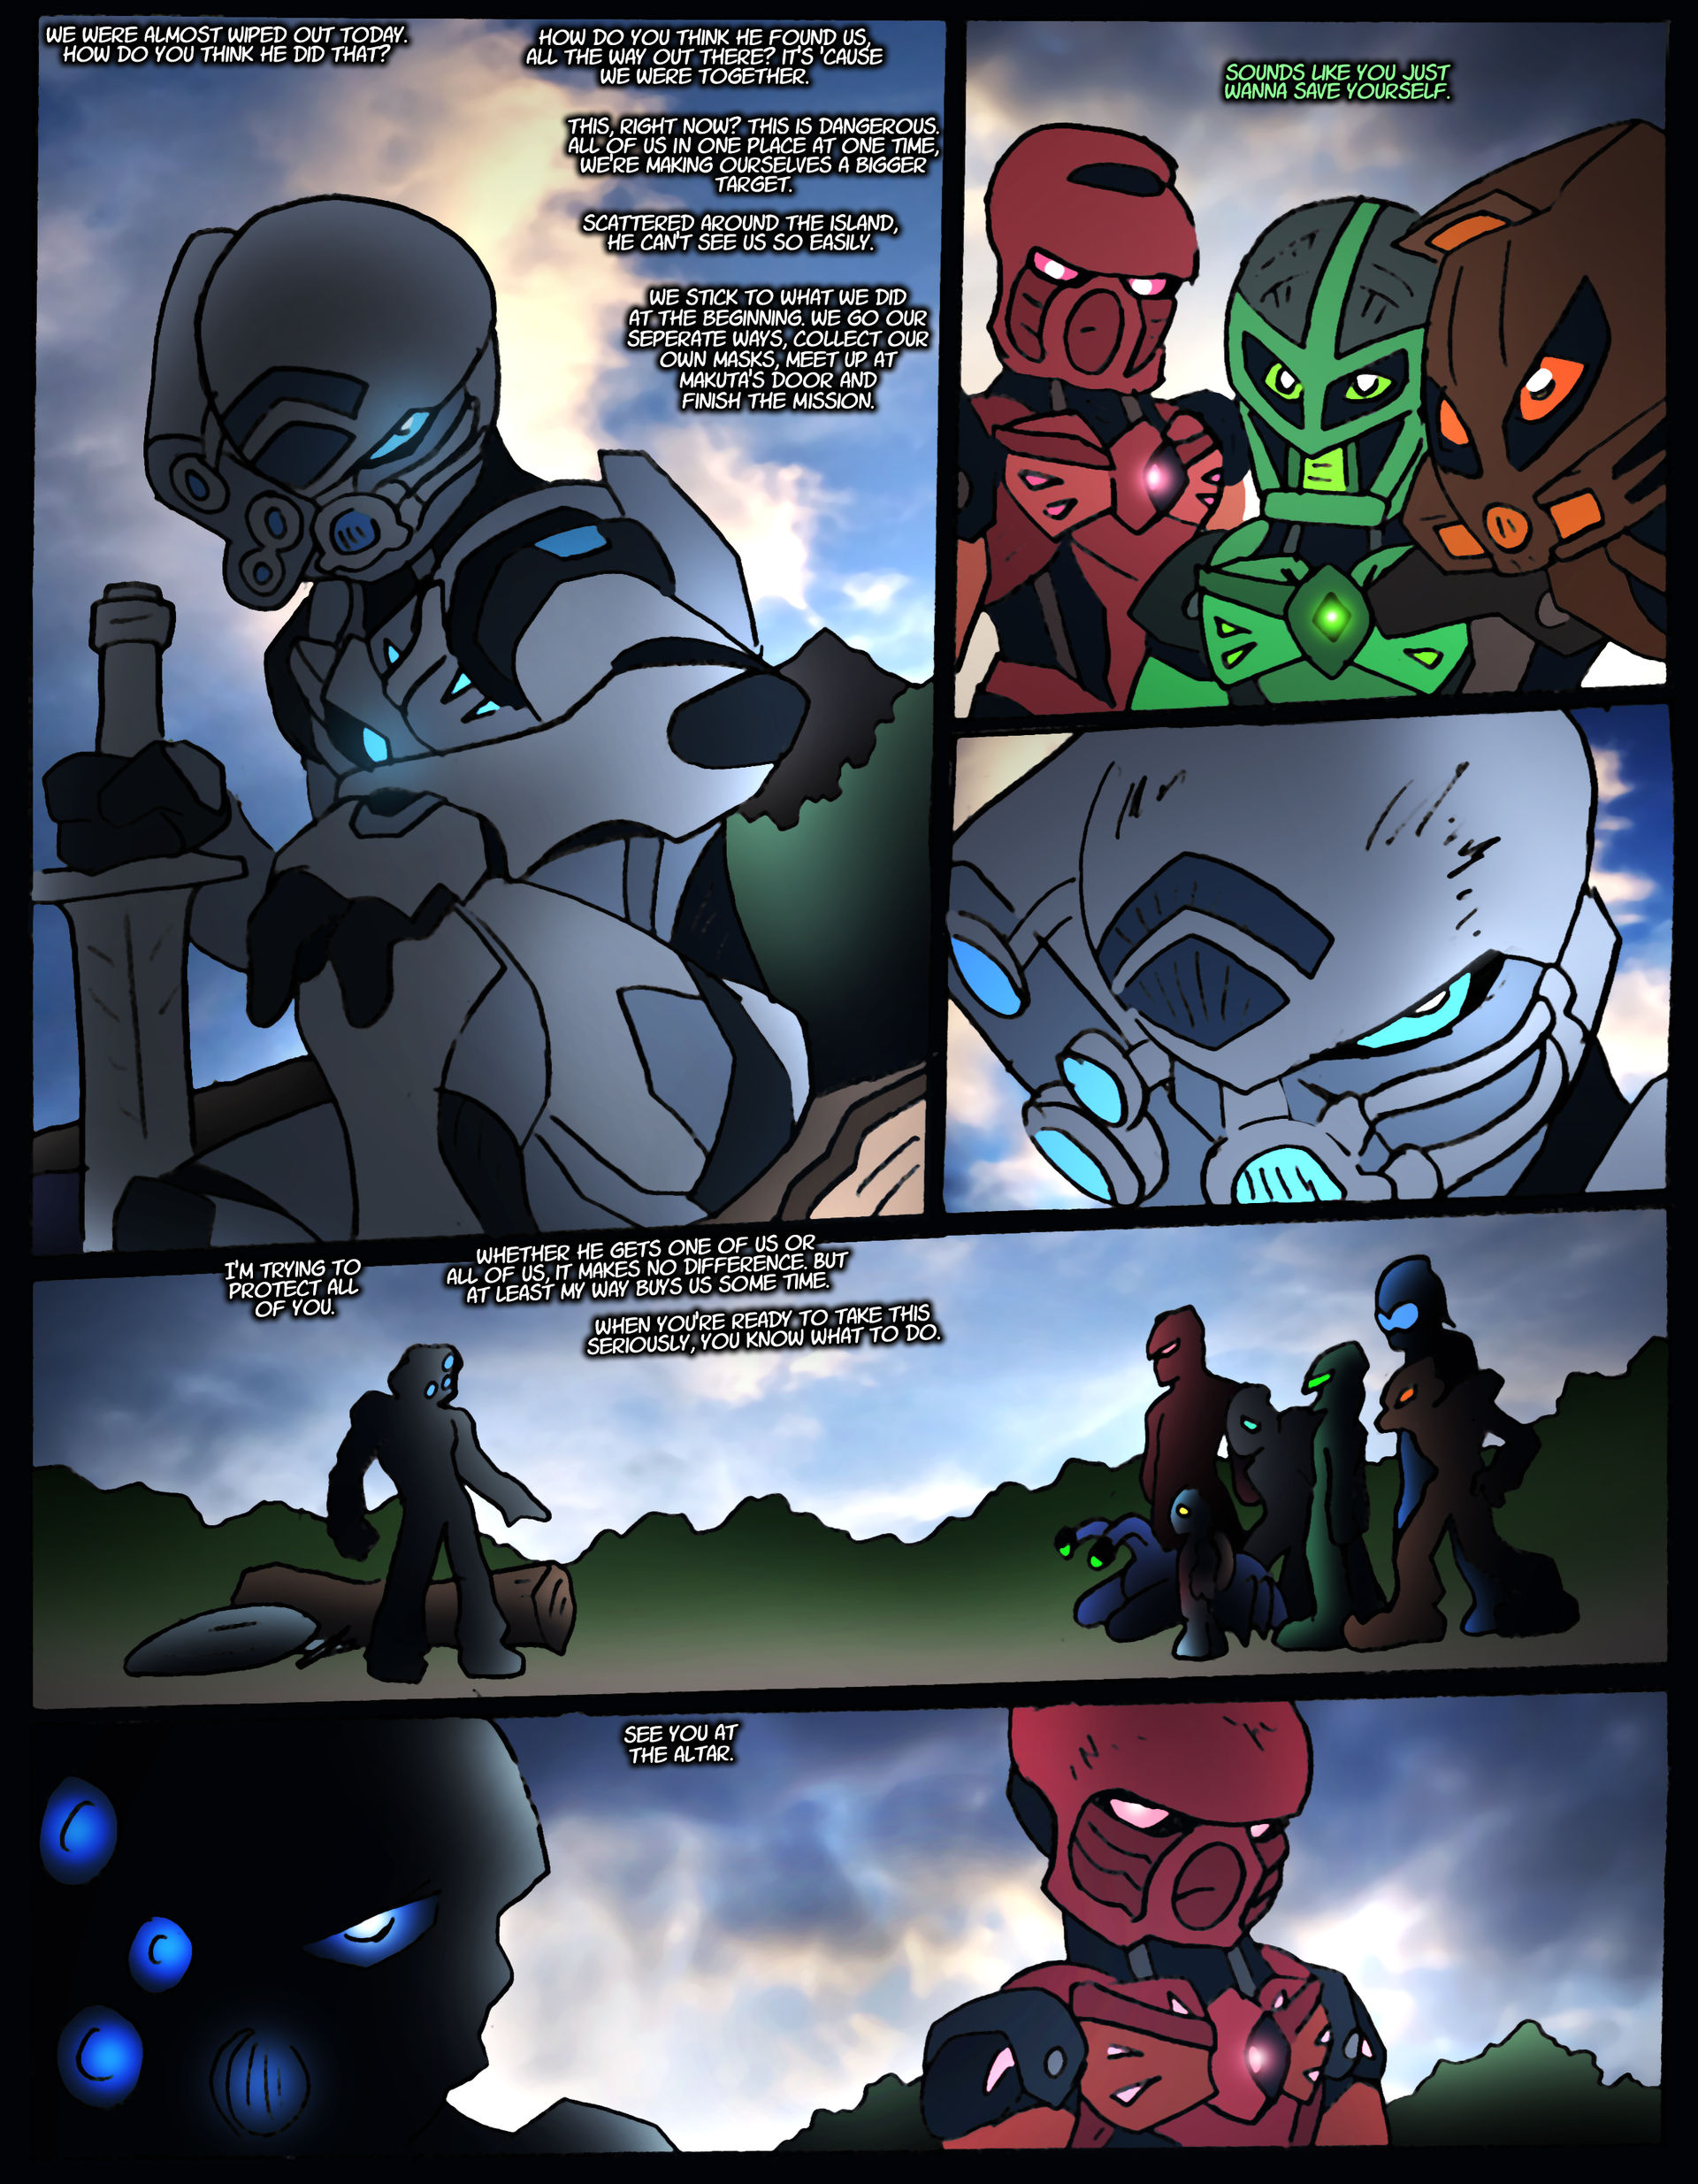 The Toa- 117- Kopaka's Retort